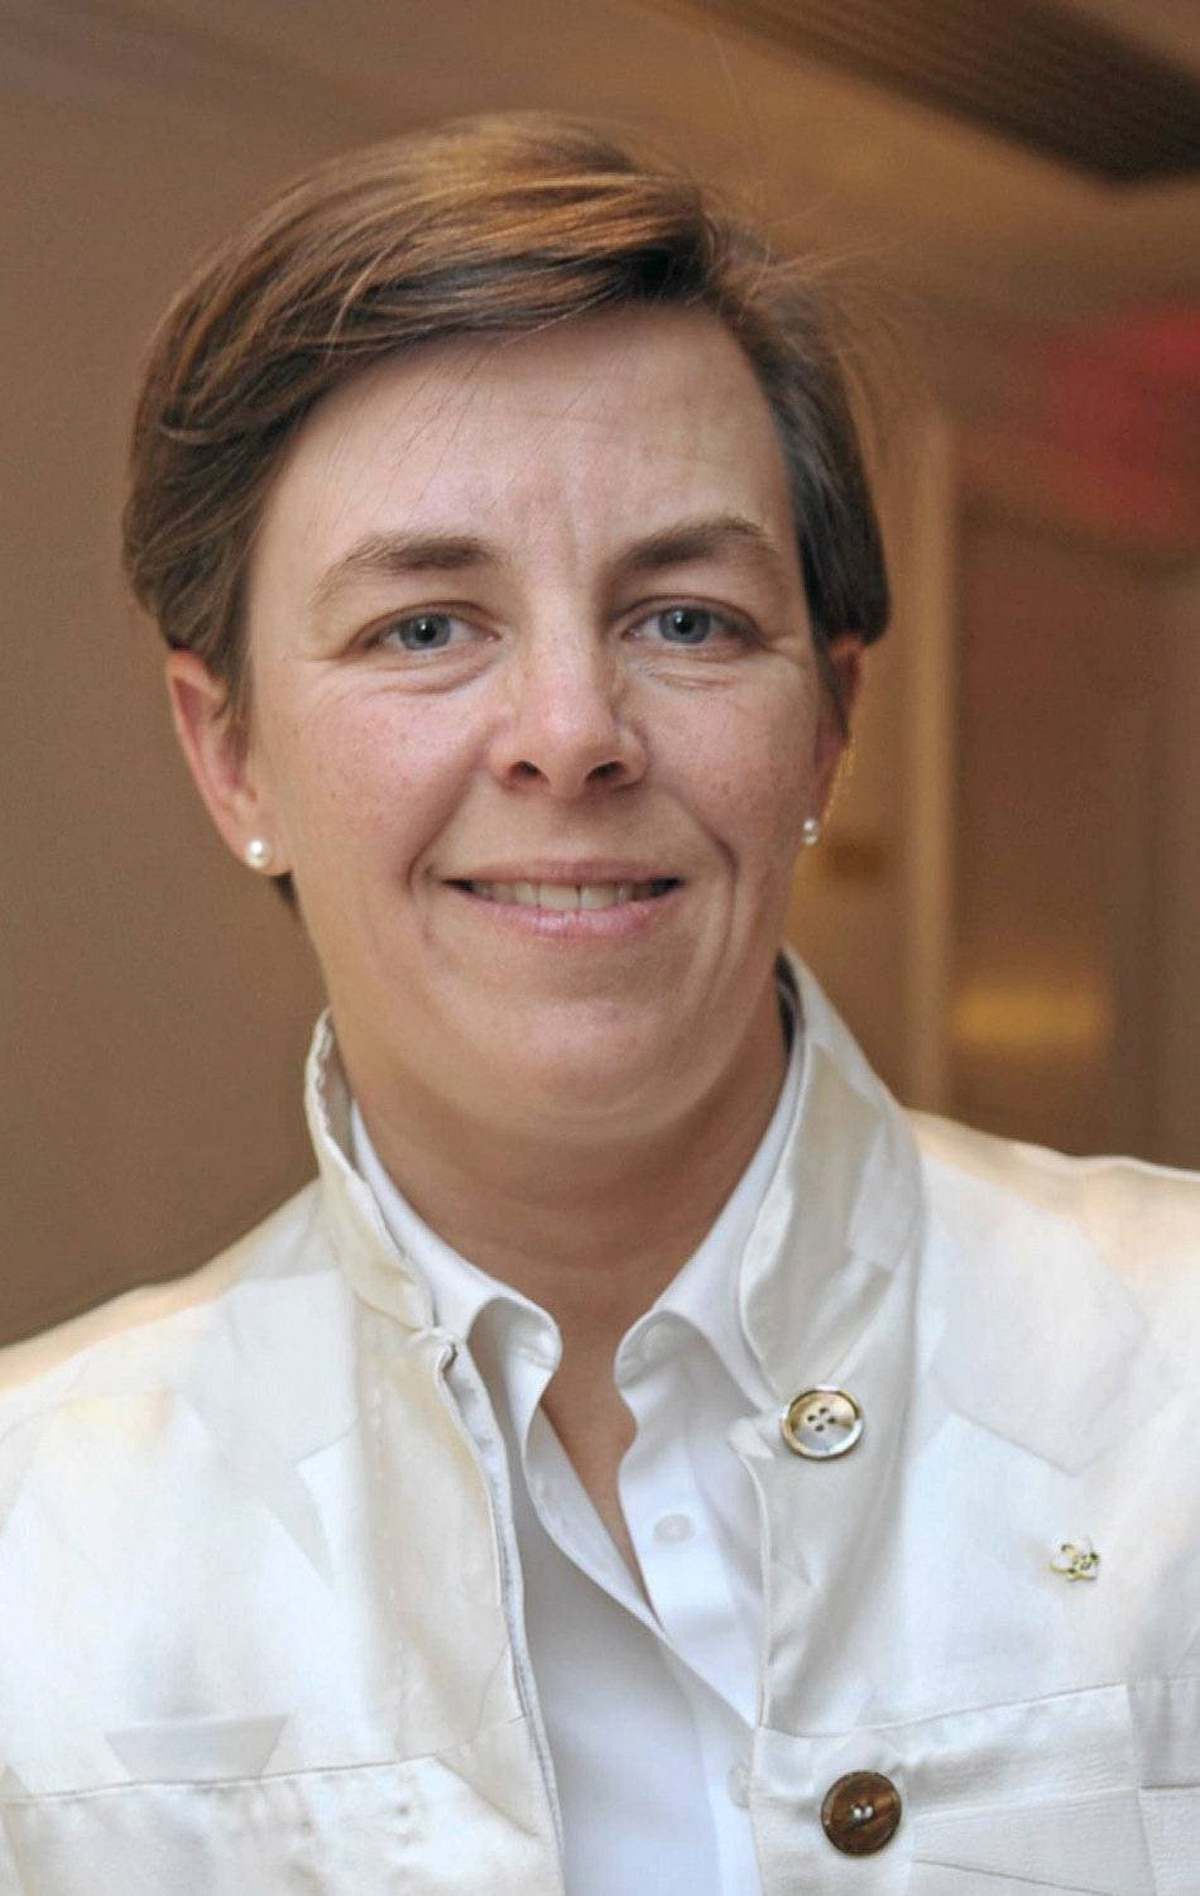 'YOUNG AND PROMISING' KELLIE LEITCH: A pediatric surgeon from the Ontario riding of Simcoe-Grey, she defeated Helena Guergis, who was estranged from the Tories after being dumped from cabinet.